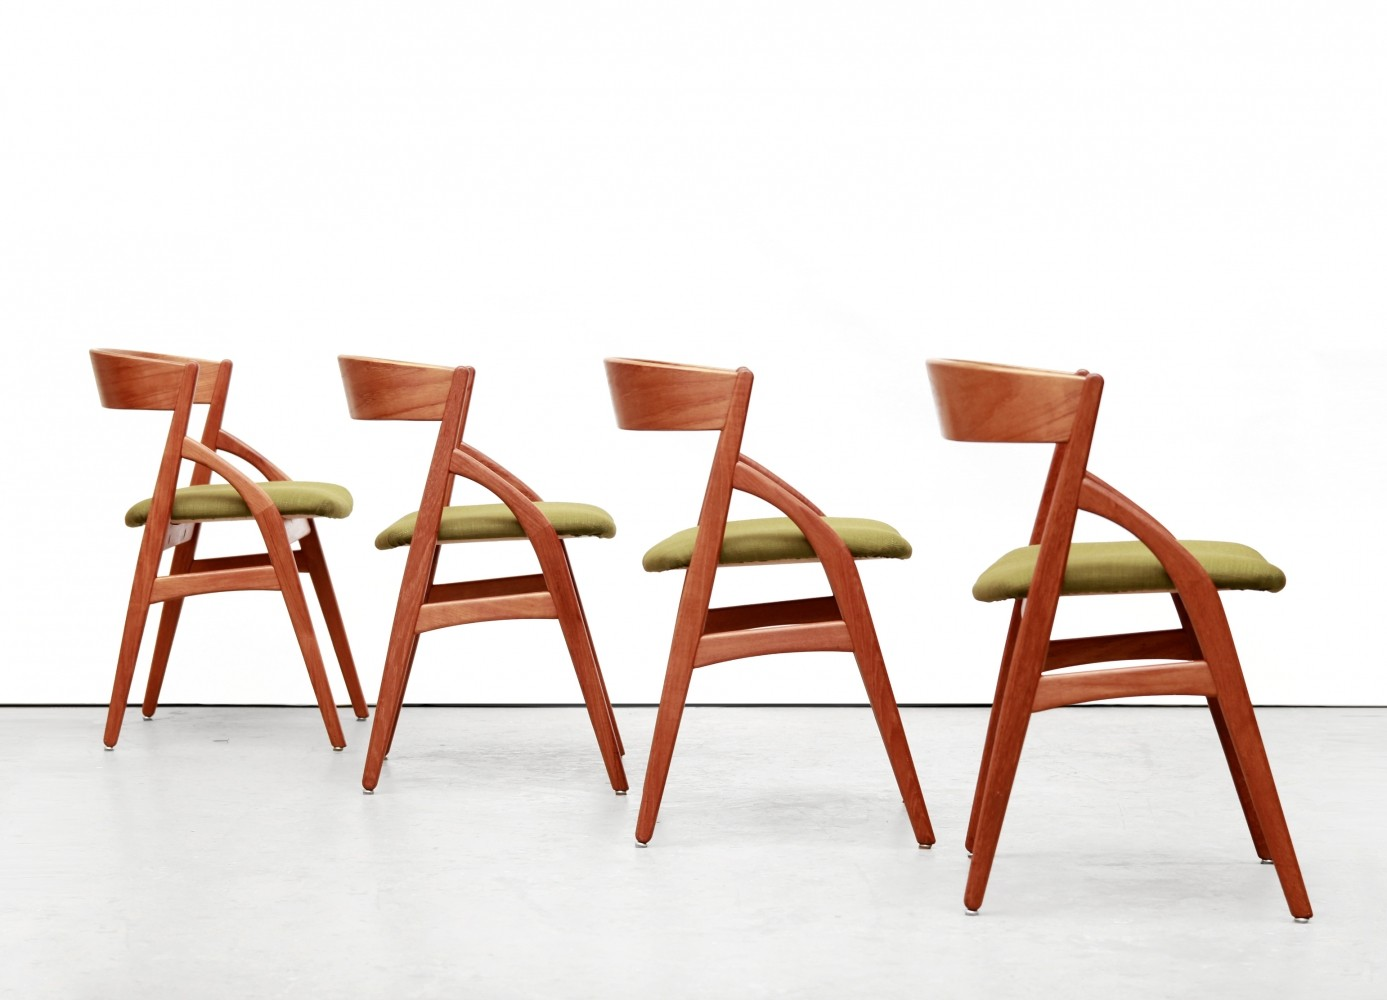 Set of 4 Danish design teak Kai Kristiansen dining room chairs